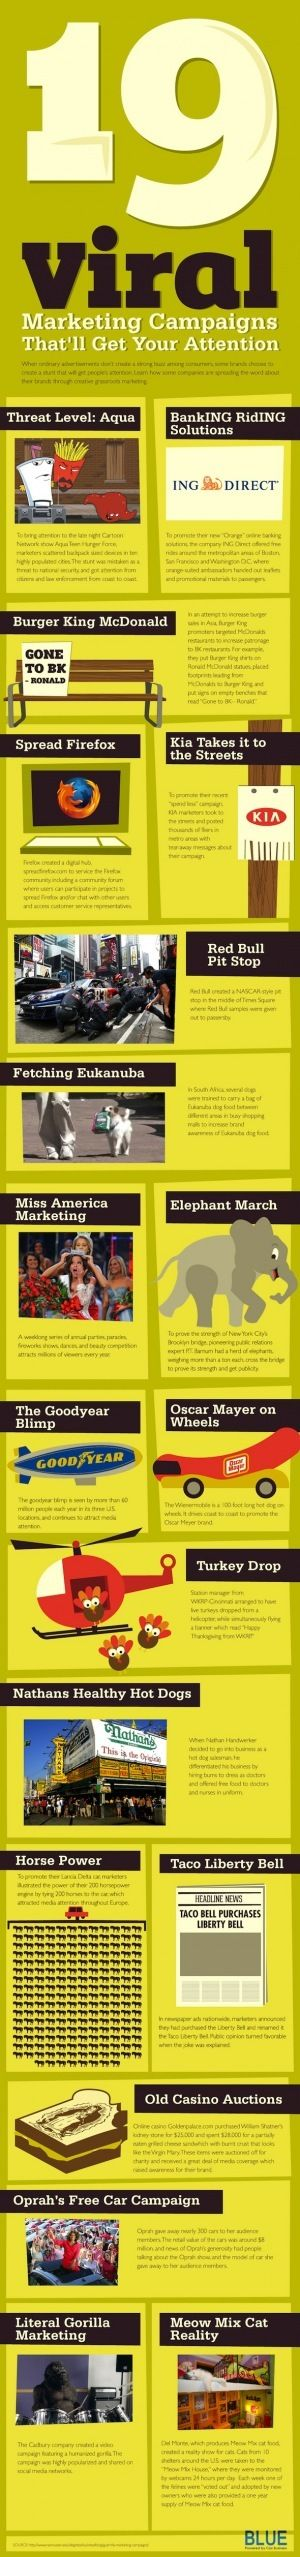 19 Viral Marketing Campaigns That'll Get Your Attention#infographic